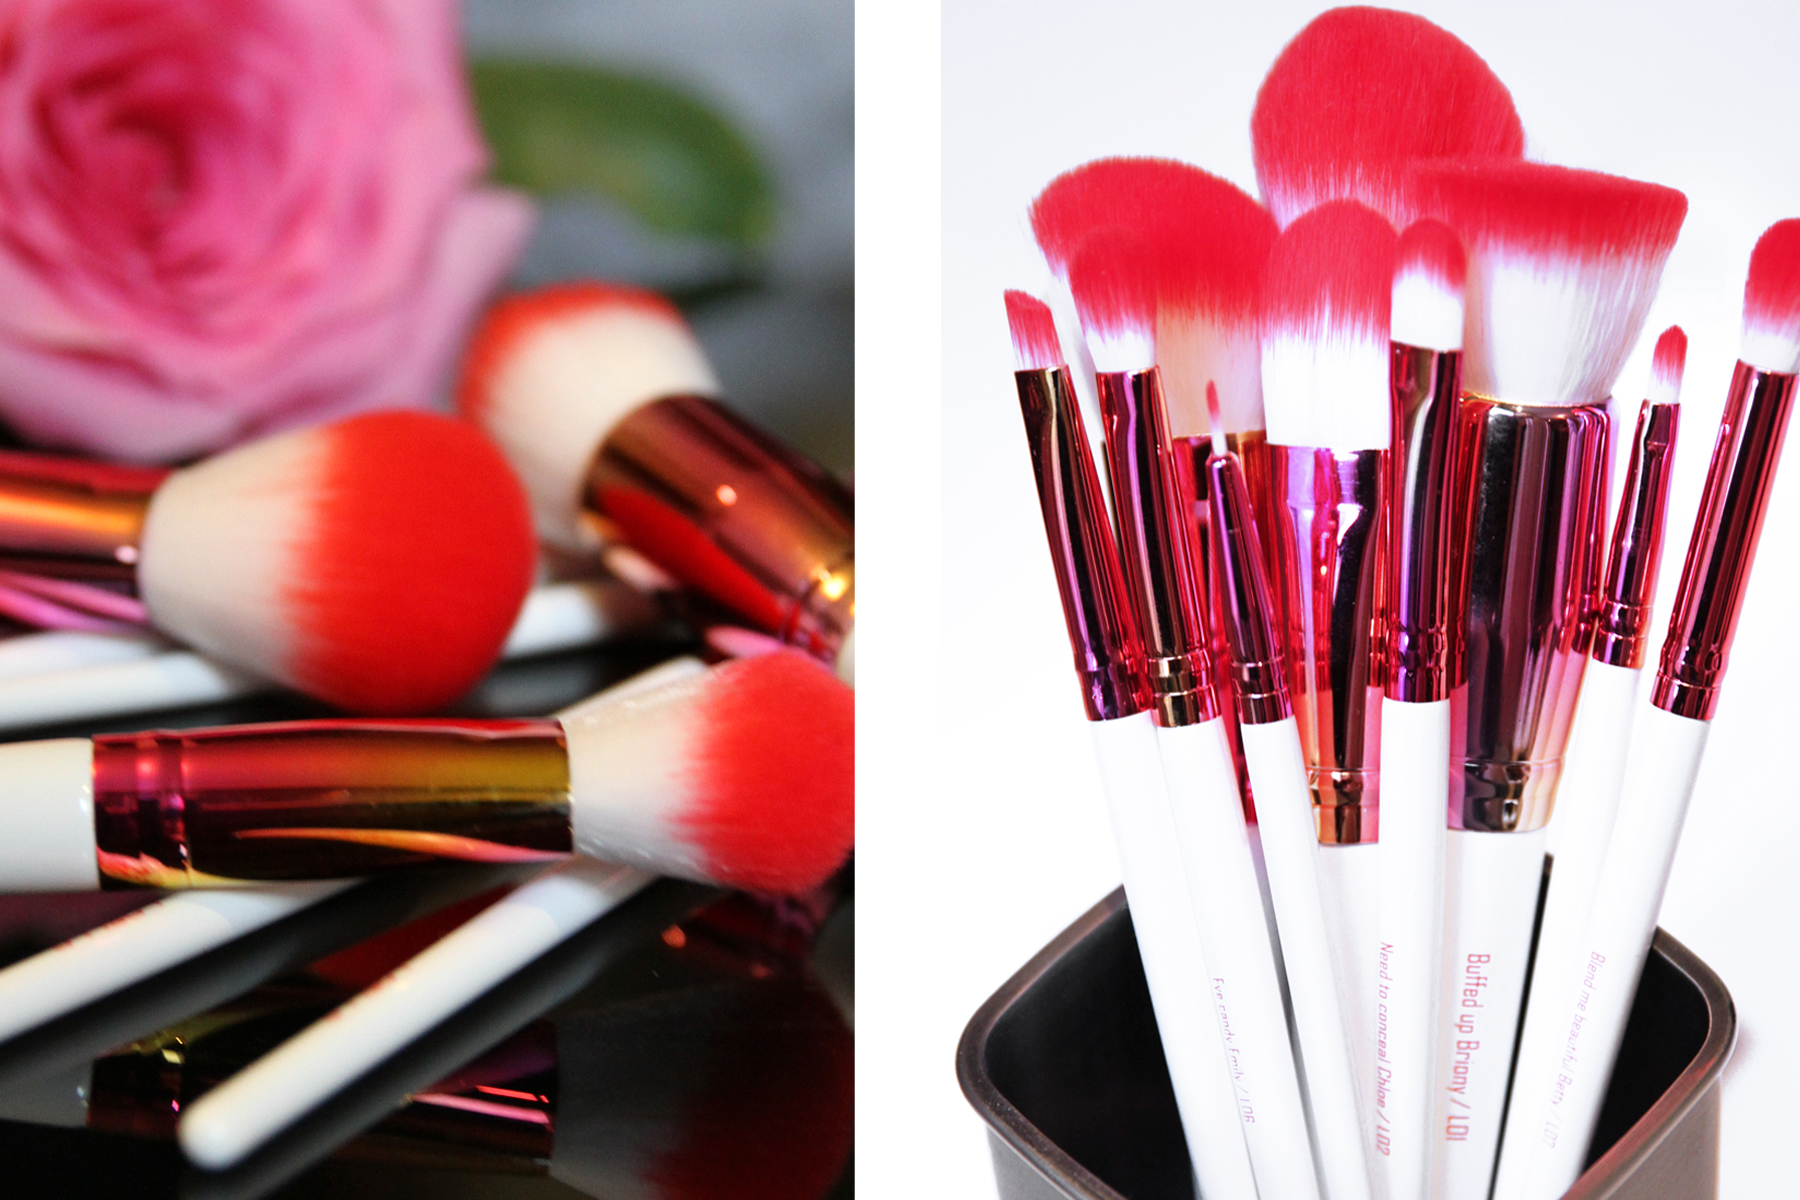 Loella Cosmetics Girl on Fire Brushes